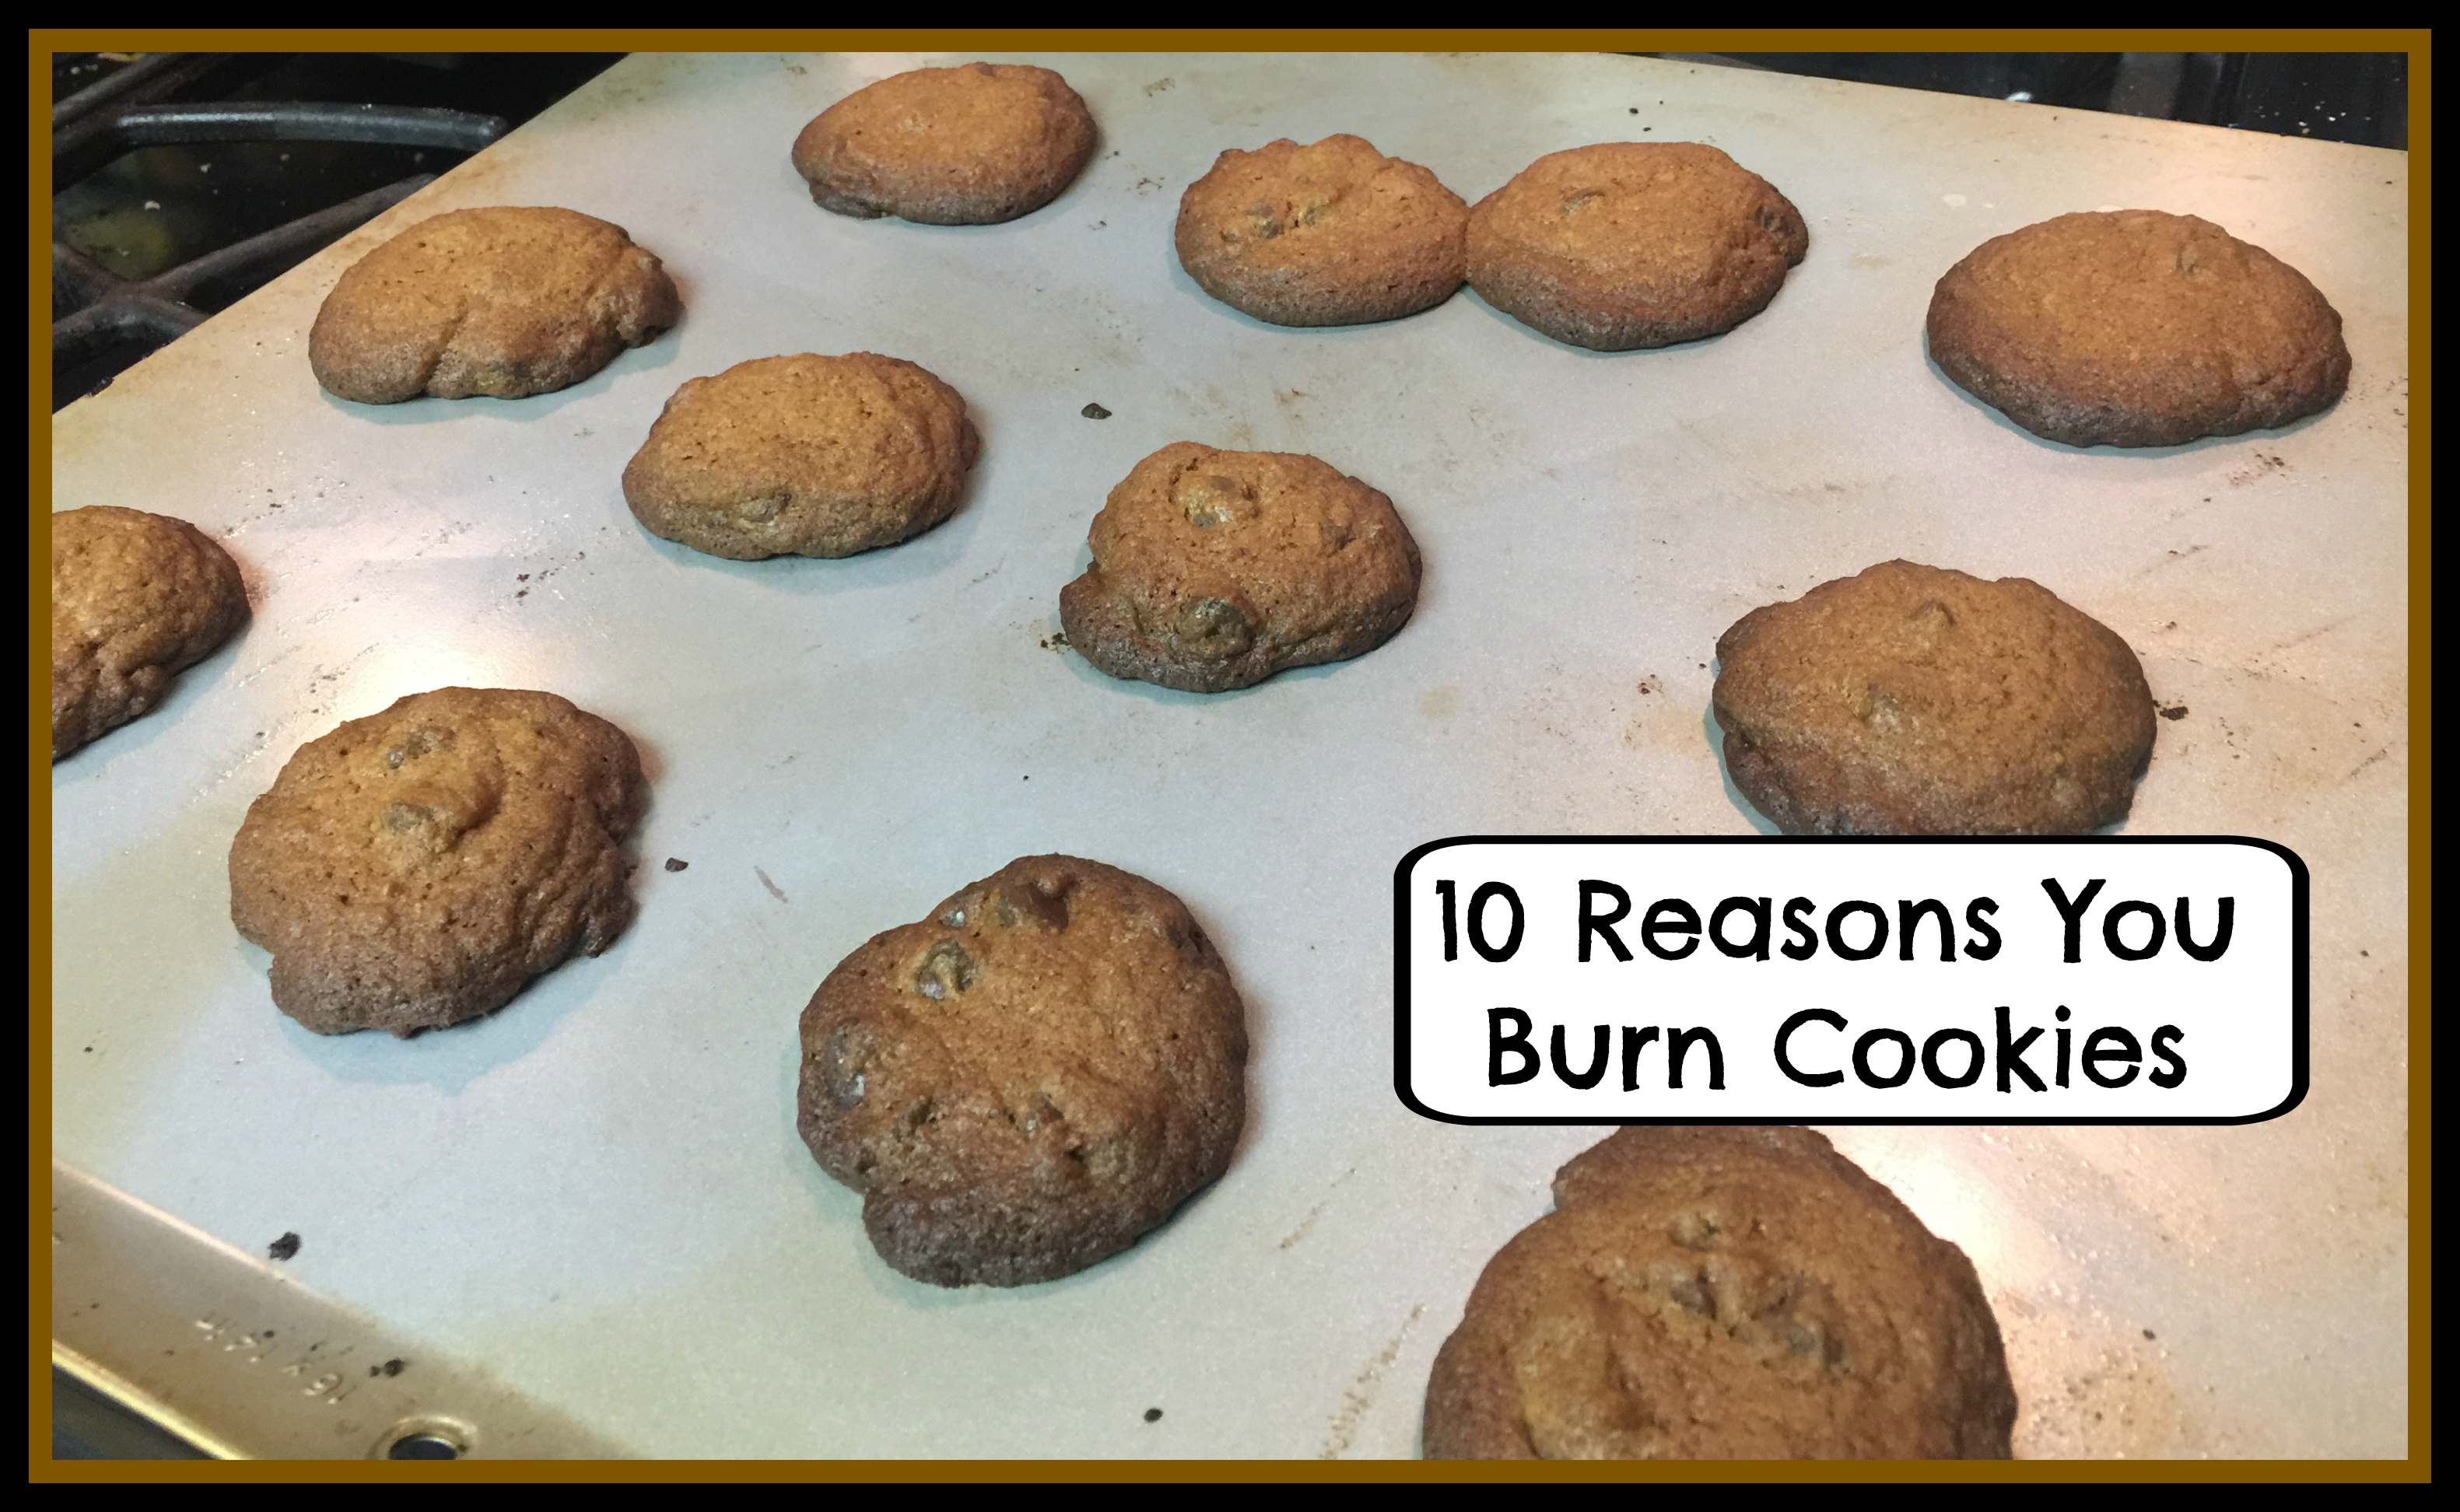 #Foodie #Cookies #Holidays #Baking #Fails